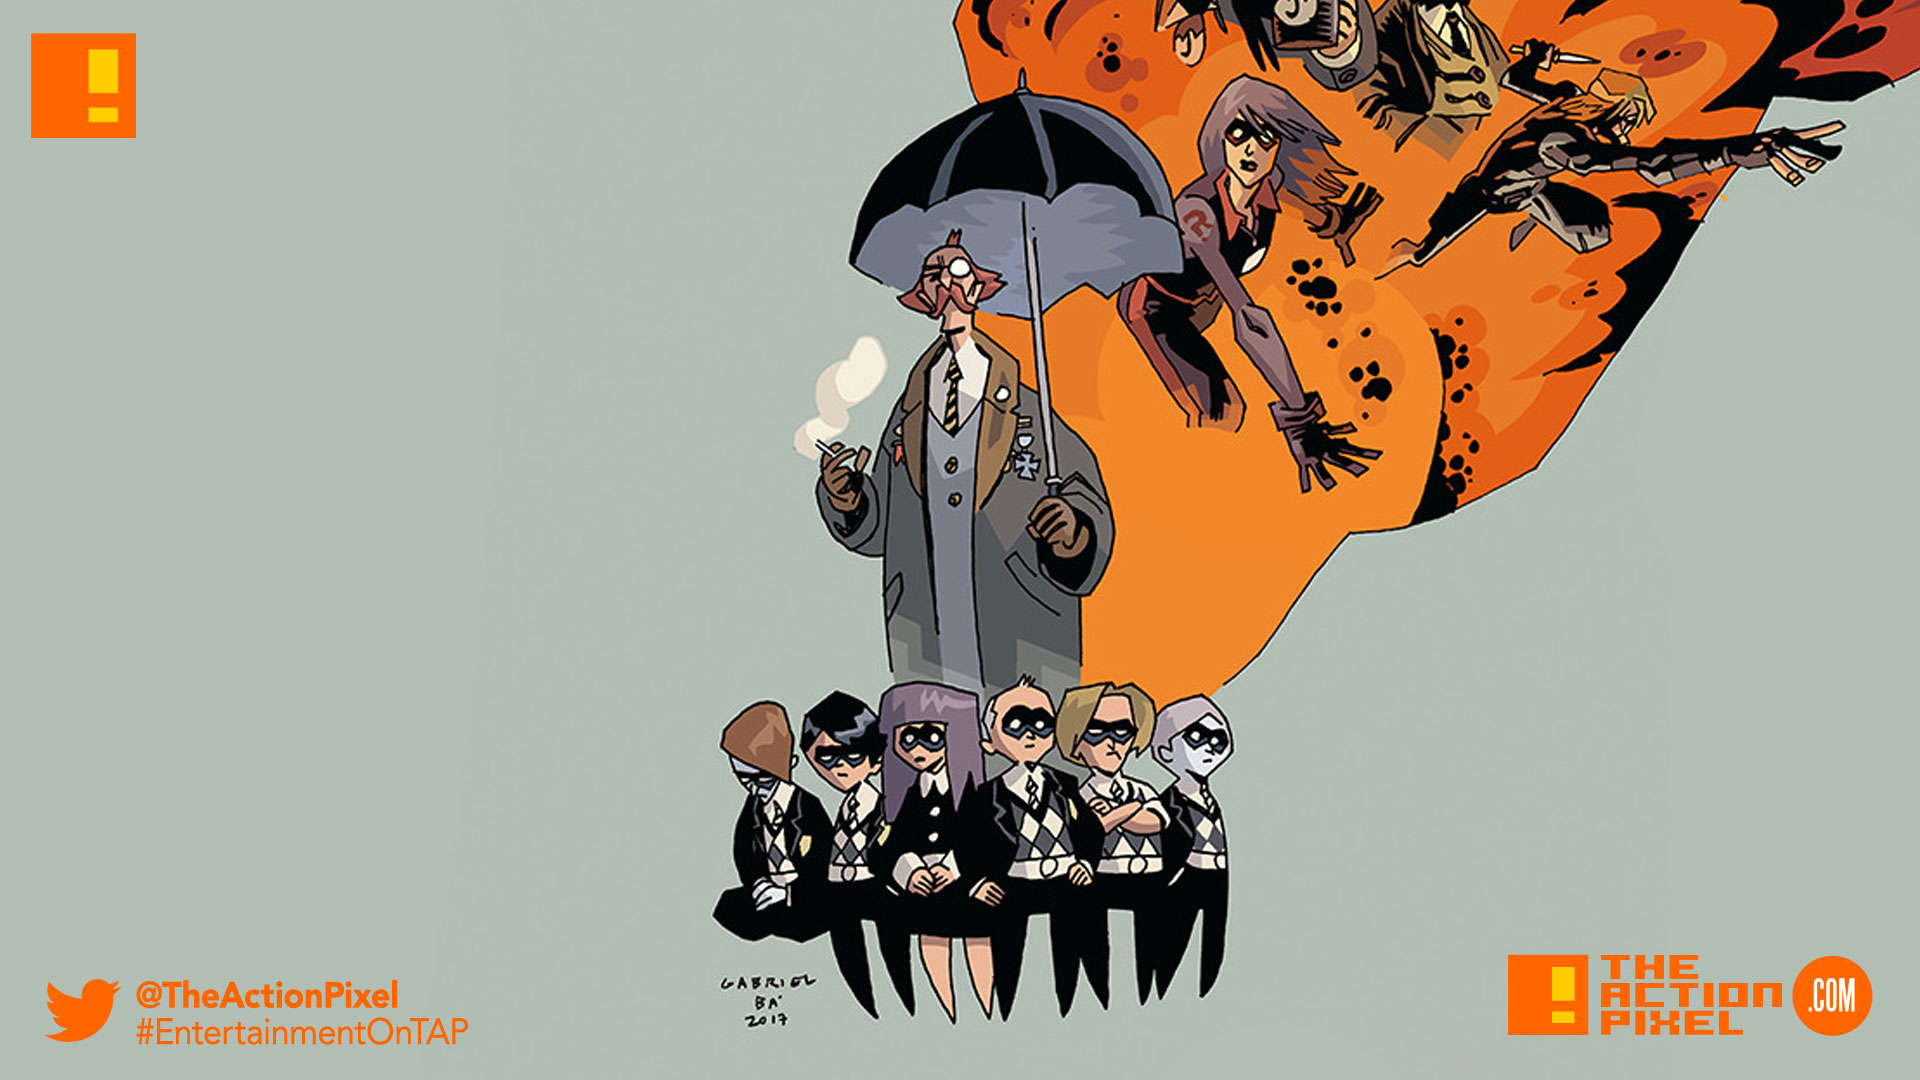 The Monocle, Spaceboy, The Kraken, The Rumor, The Séance, Number Five, The Horror, the white violin,cindy holland,netflix,dark horse,dark horse comics, the umbrella academy,gabriel bá,gerard way,the action pixel,entertainment on tap,